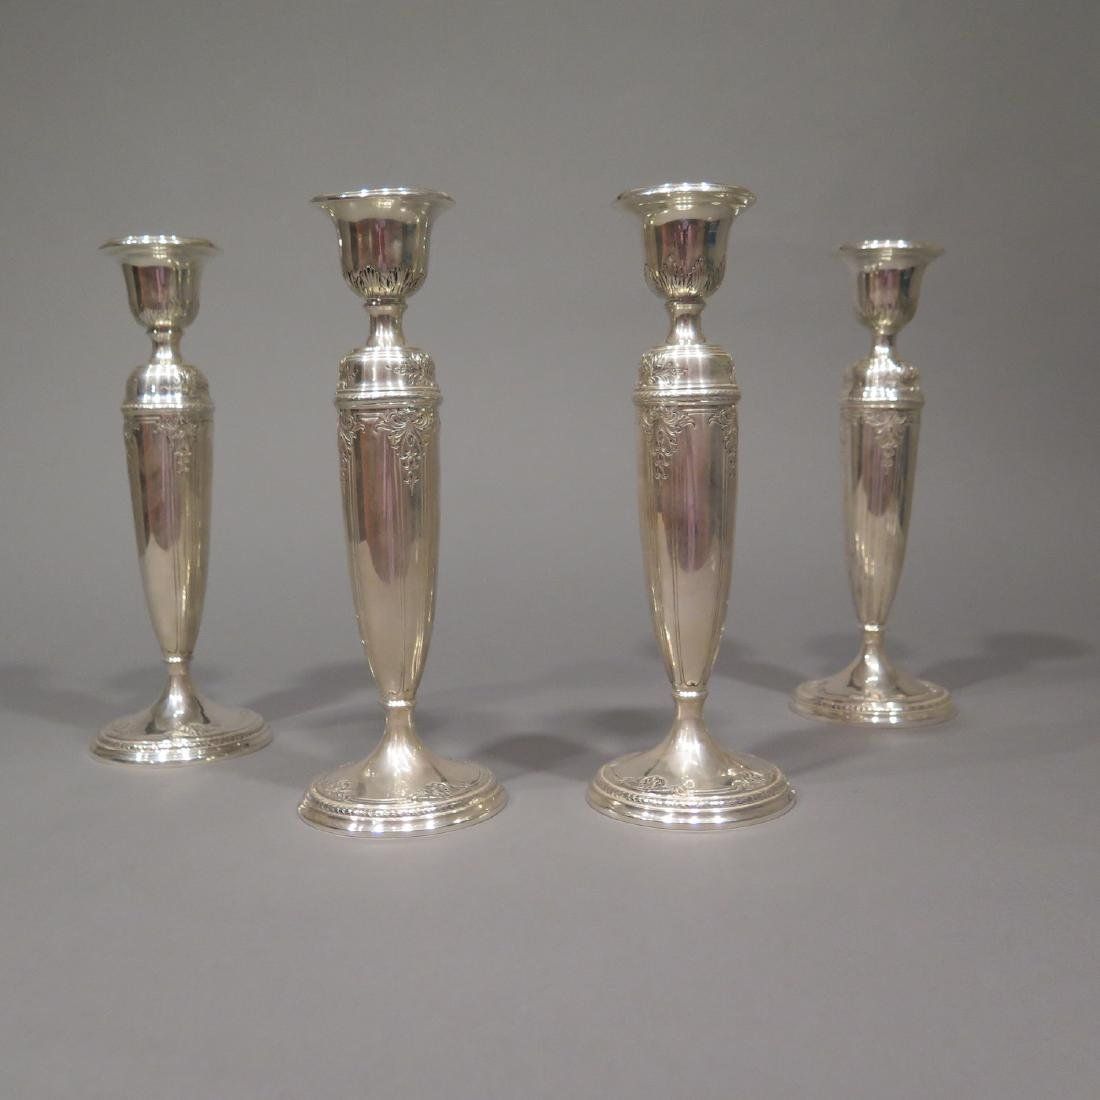 4 Sterling Silver Candlesticks